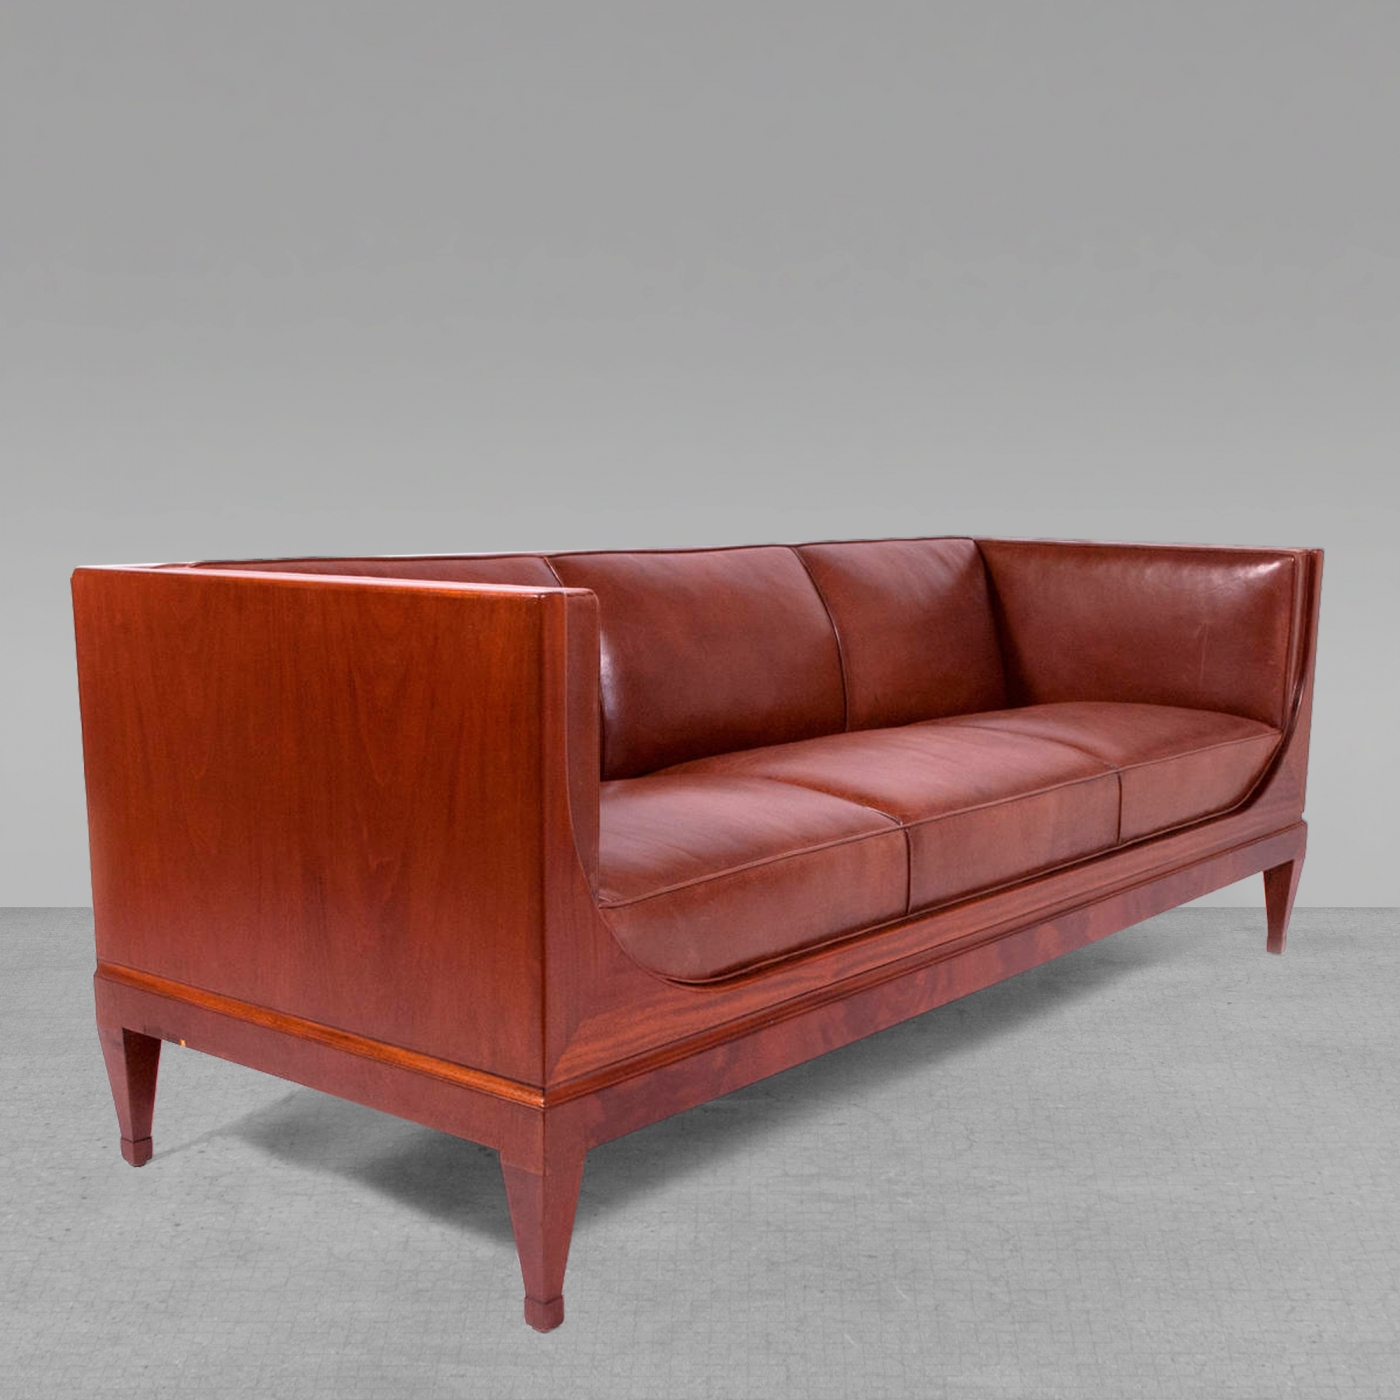 Frits Henningsen - Classic Sofafrits Henningsen, 1930S within 1930S Couch (Image 20 of 30)